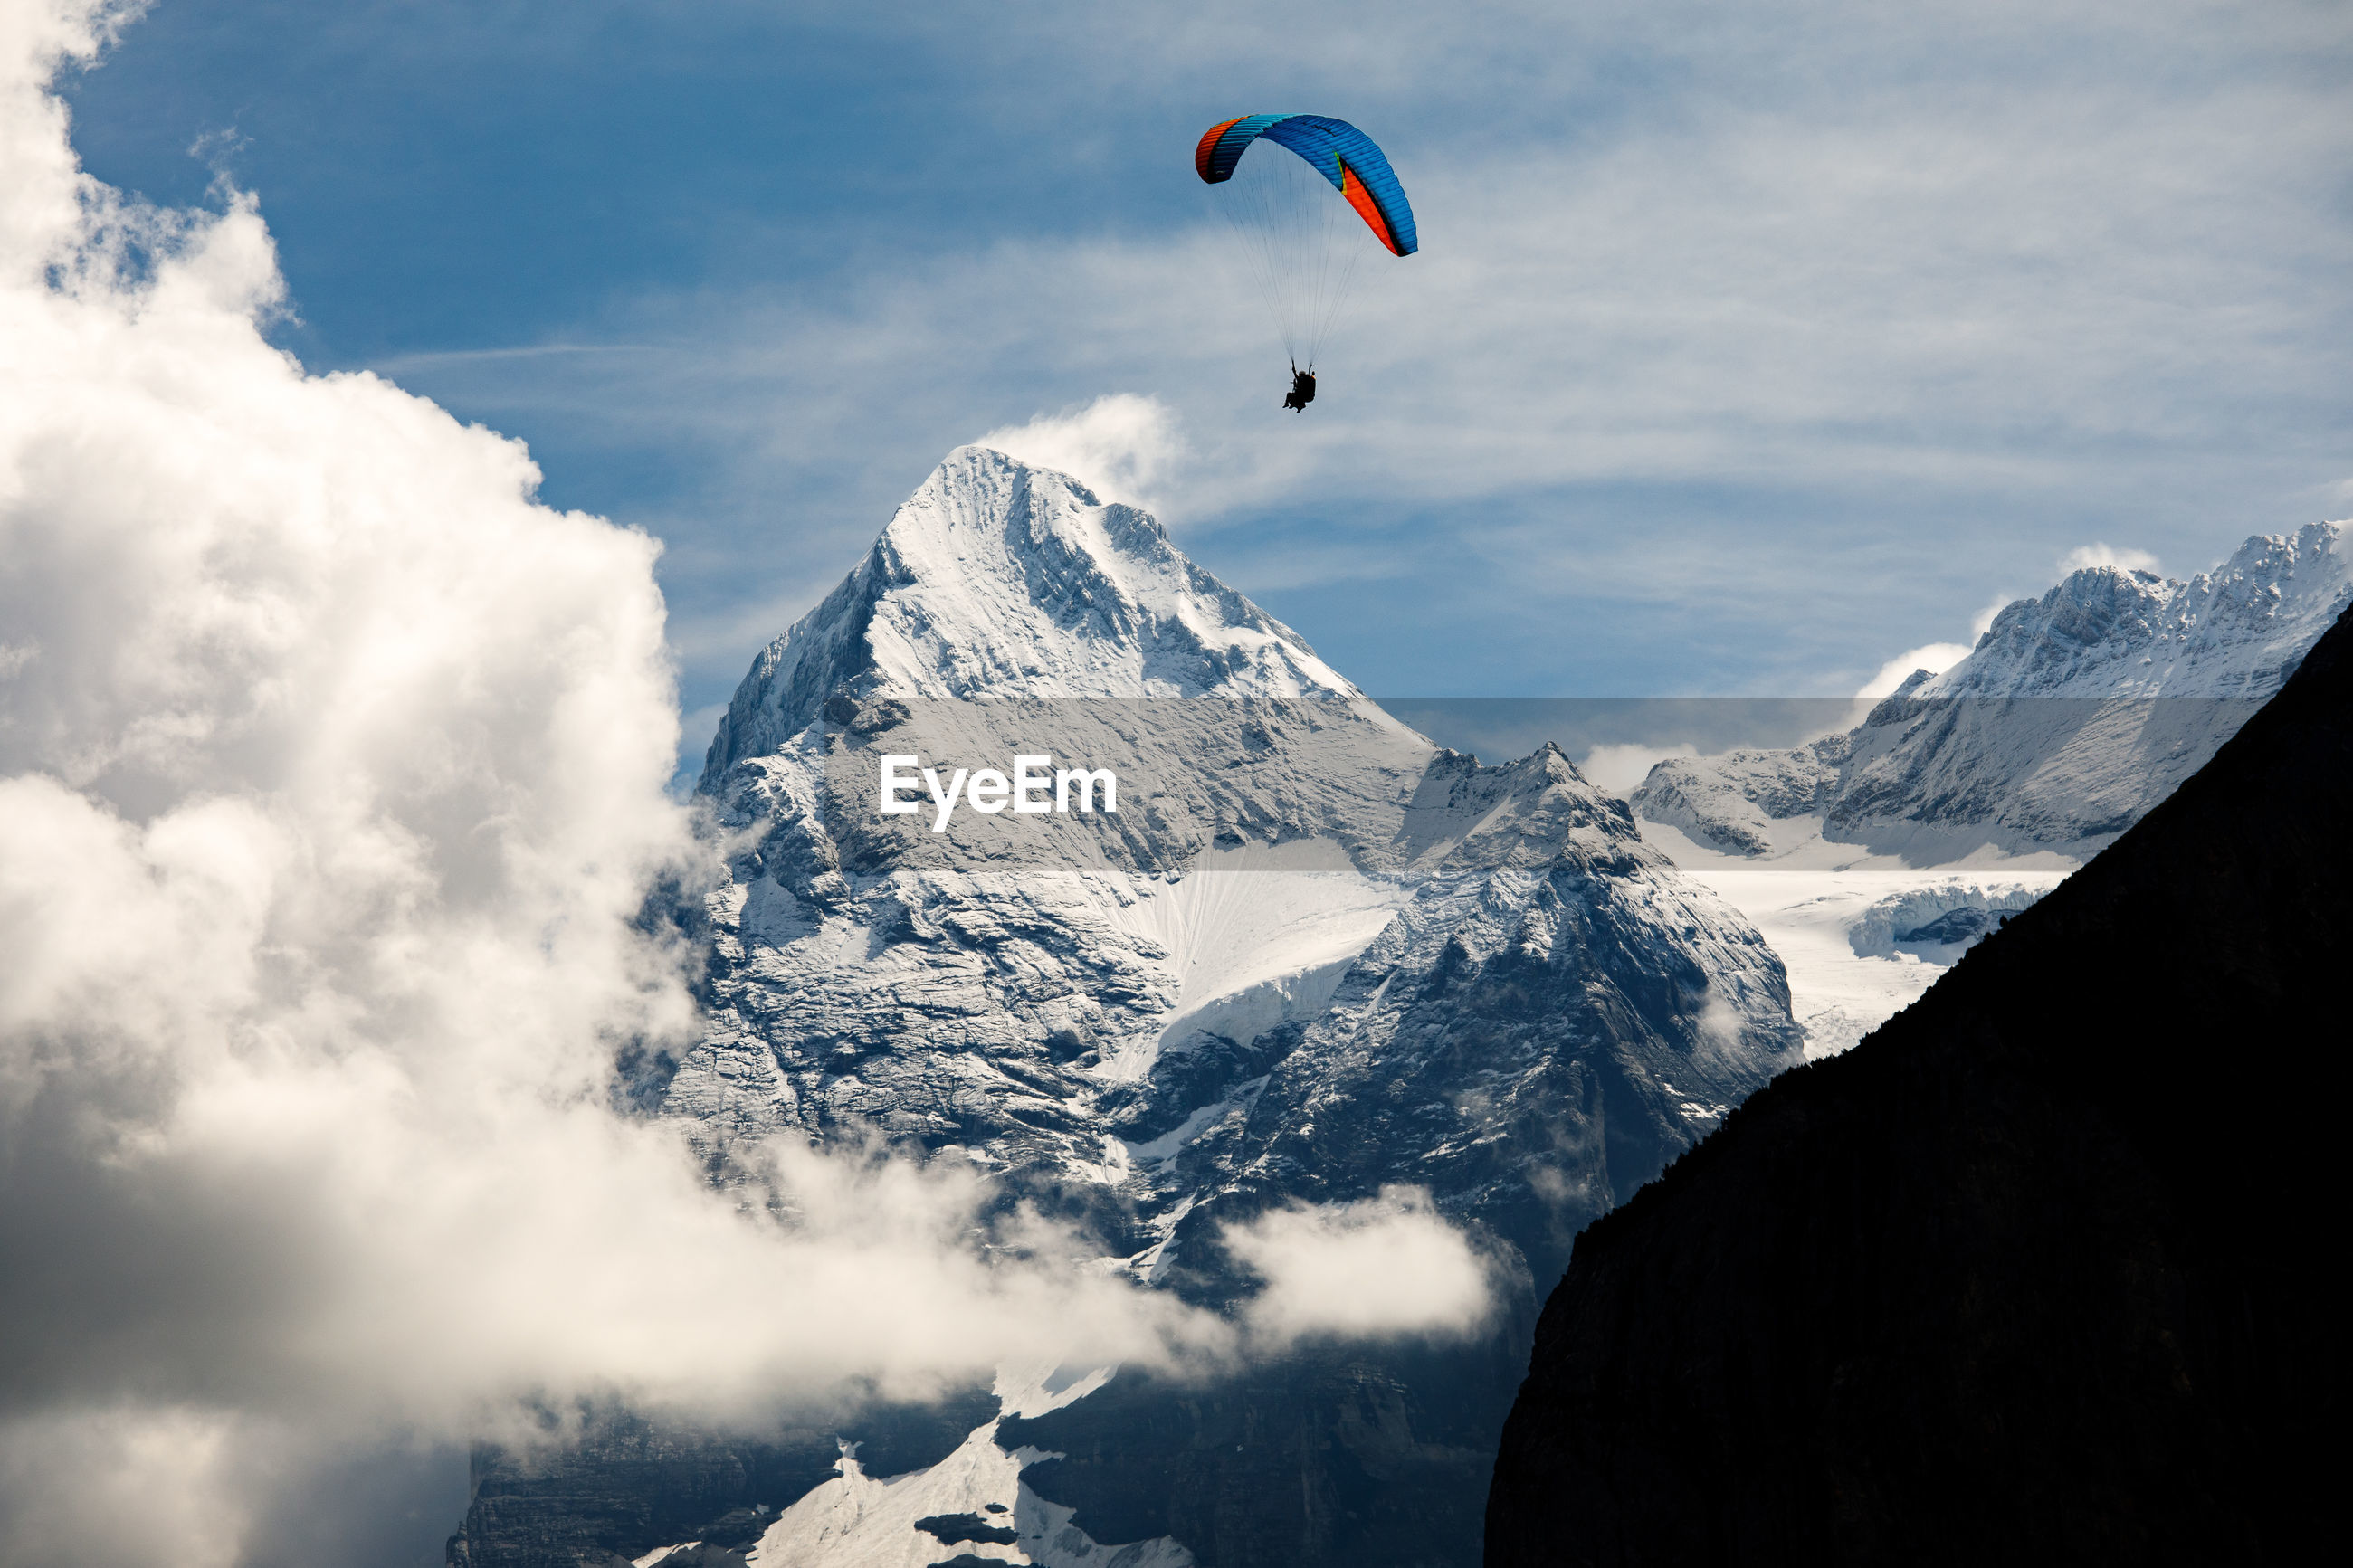 LOW ANGLE VIEW OF PERSON PARAGLIDING AGAINST SNOWCAPPED MOUNTAINS